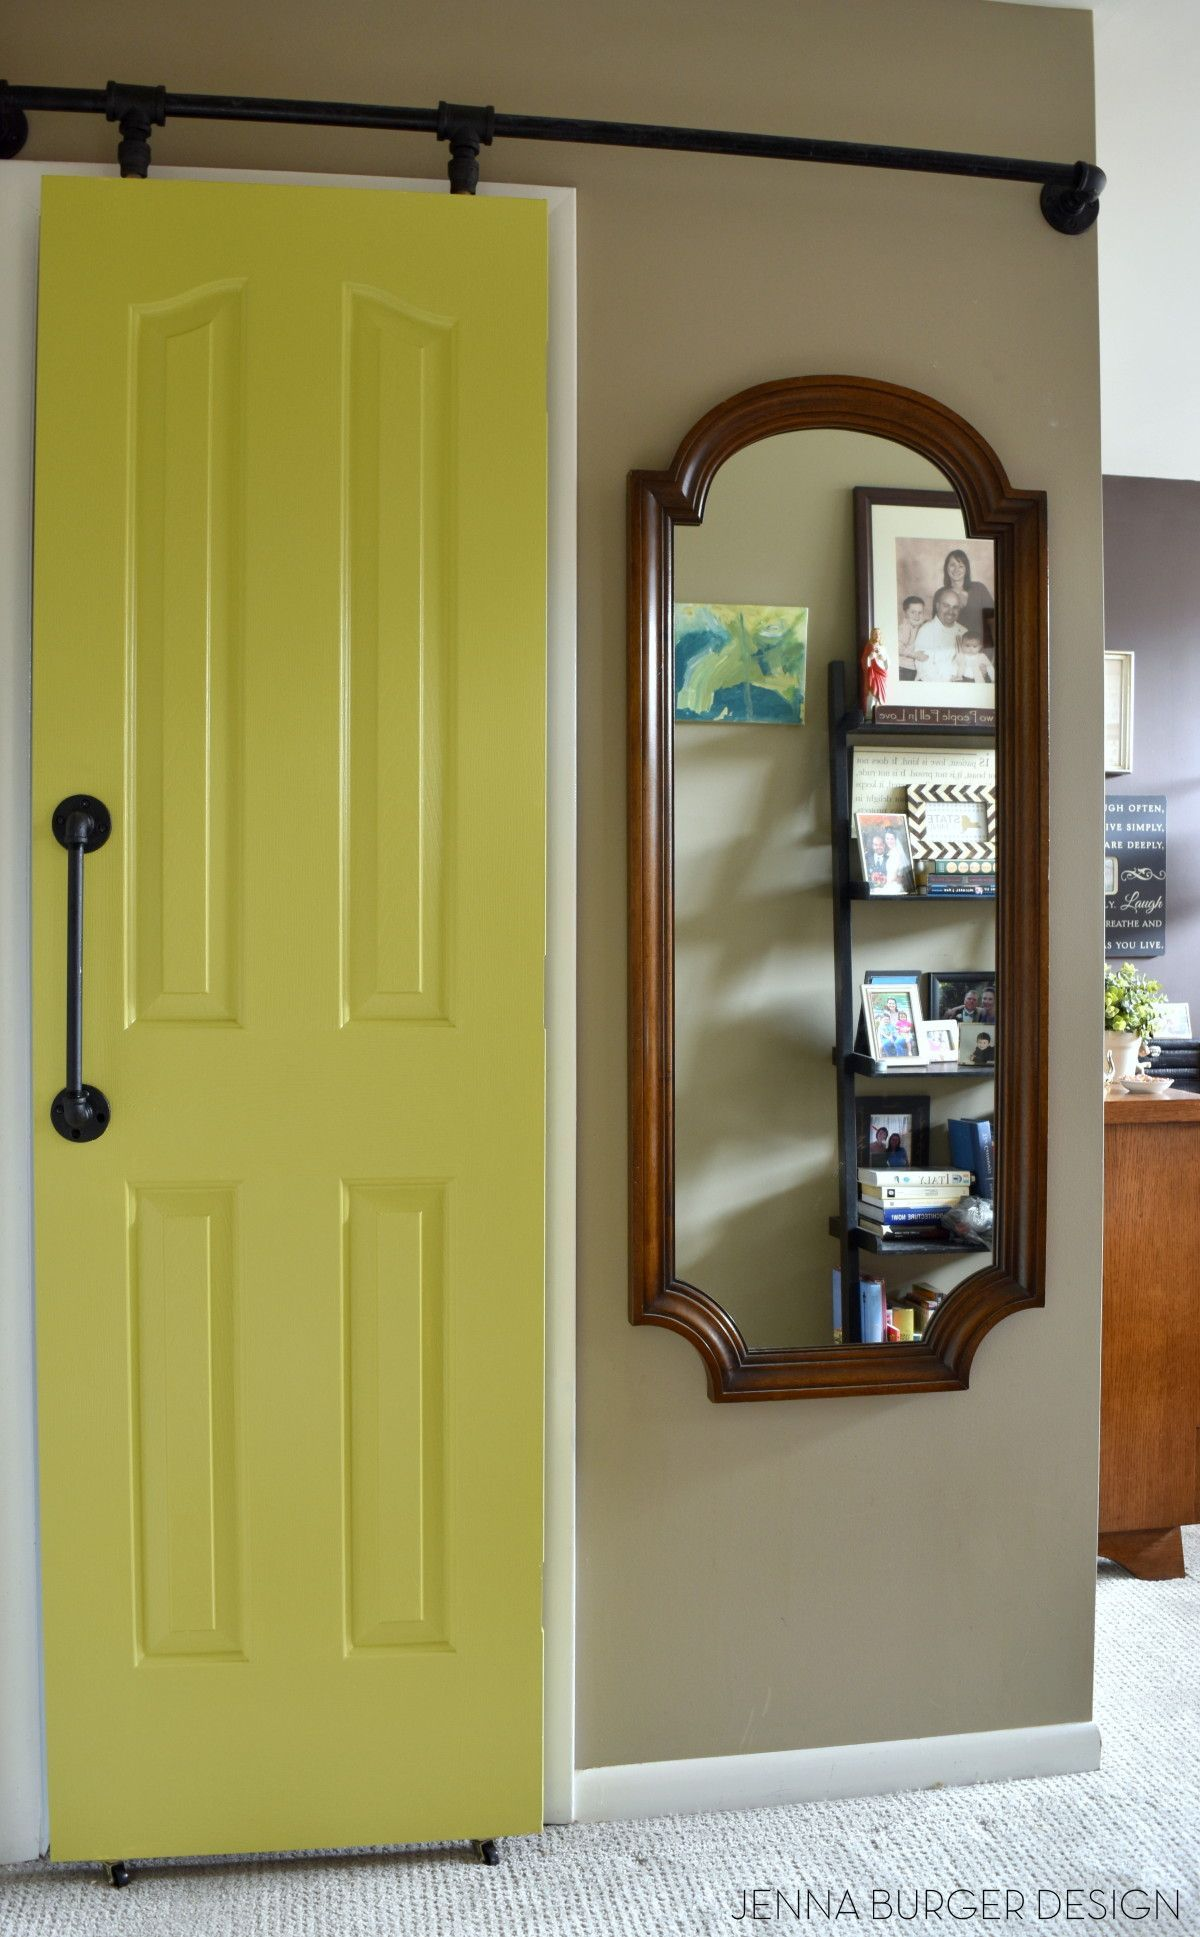 How To Do Your Own Minor Plumbing Work With Images Diy Barn Door